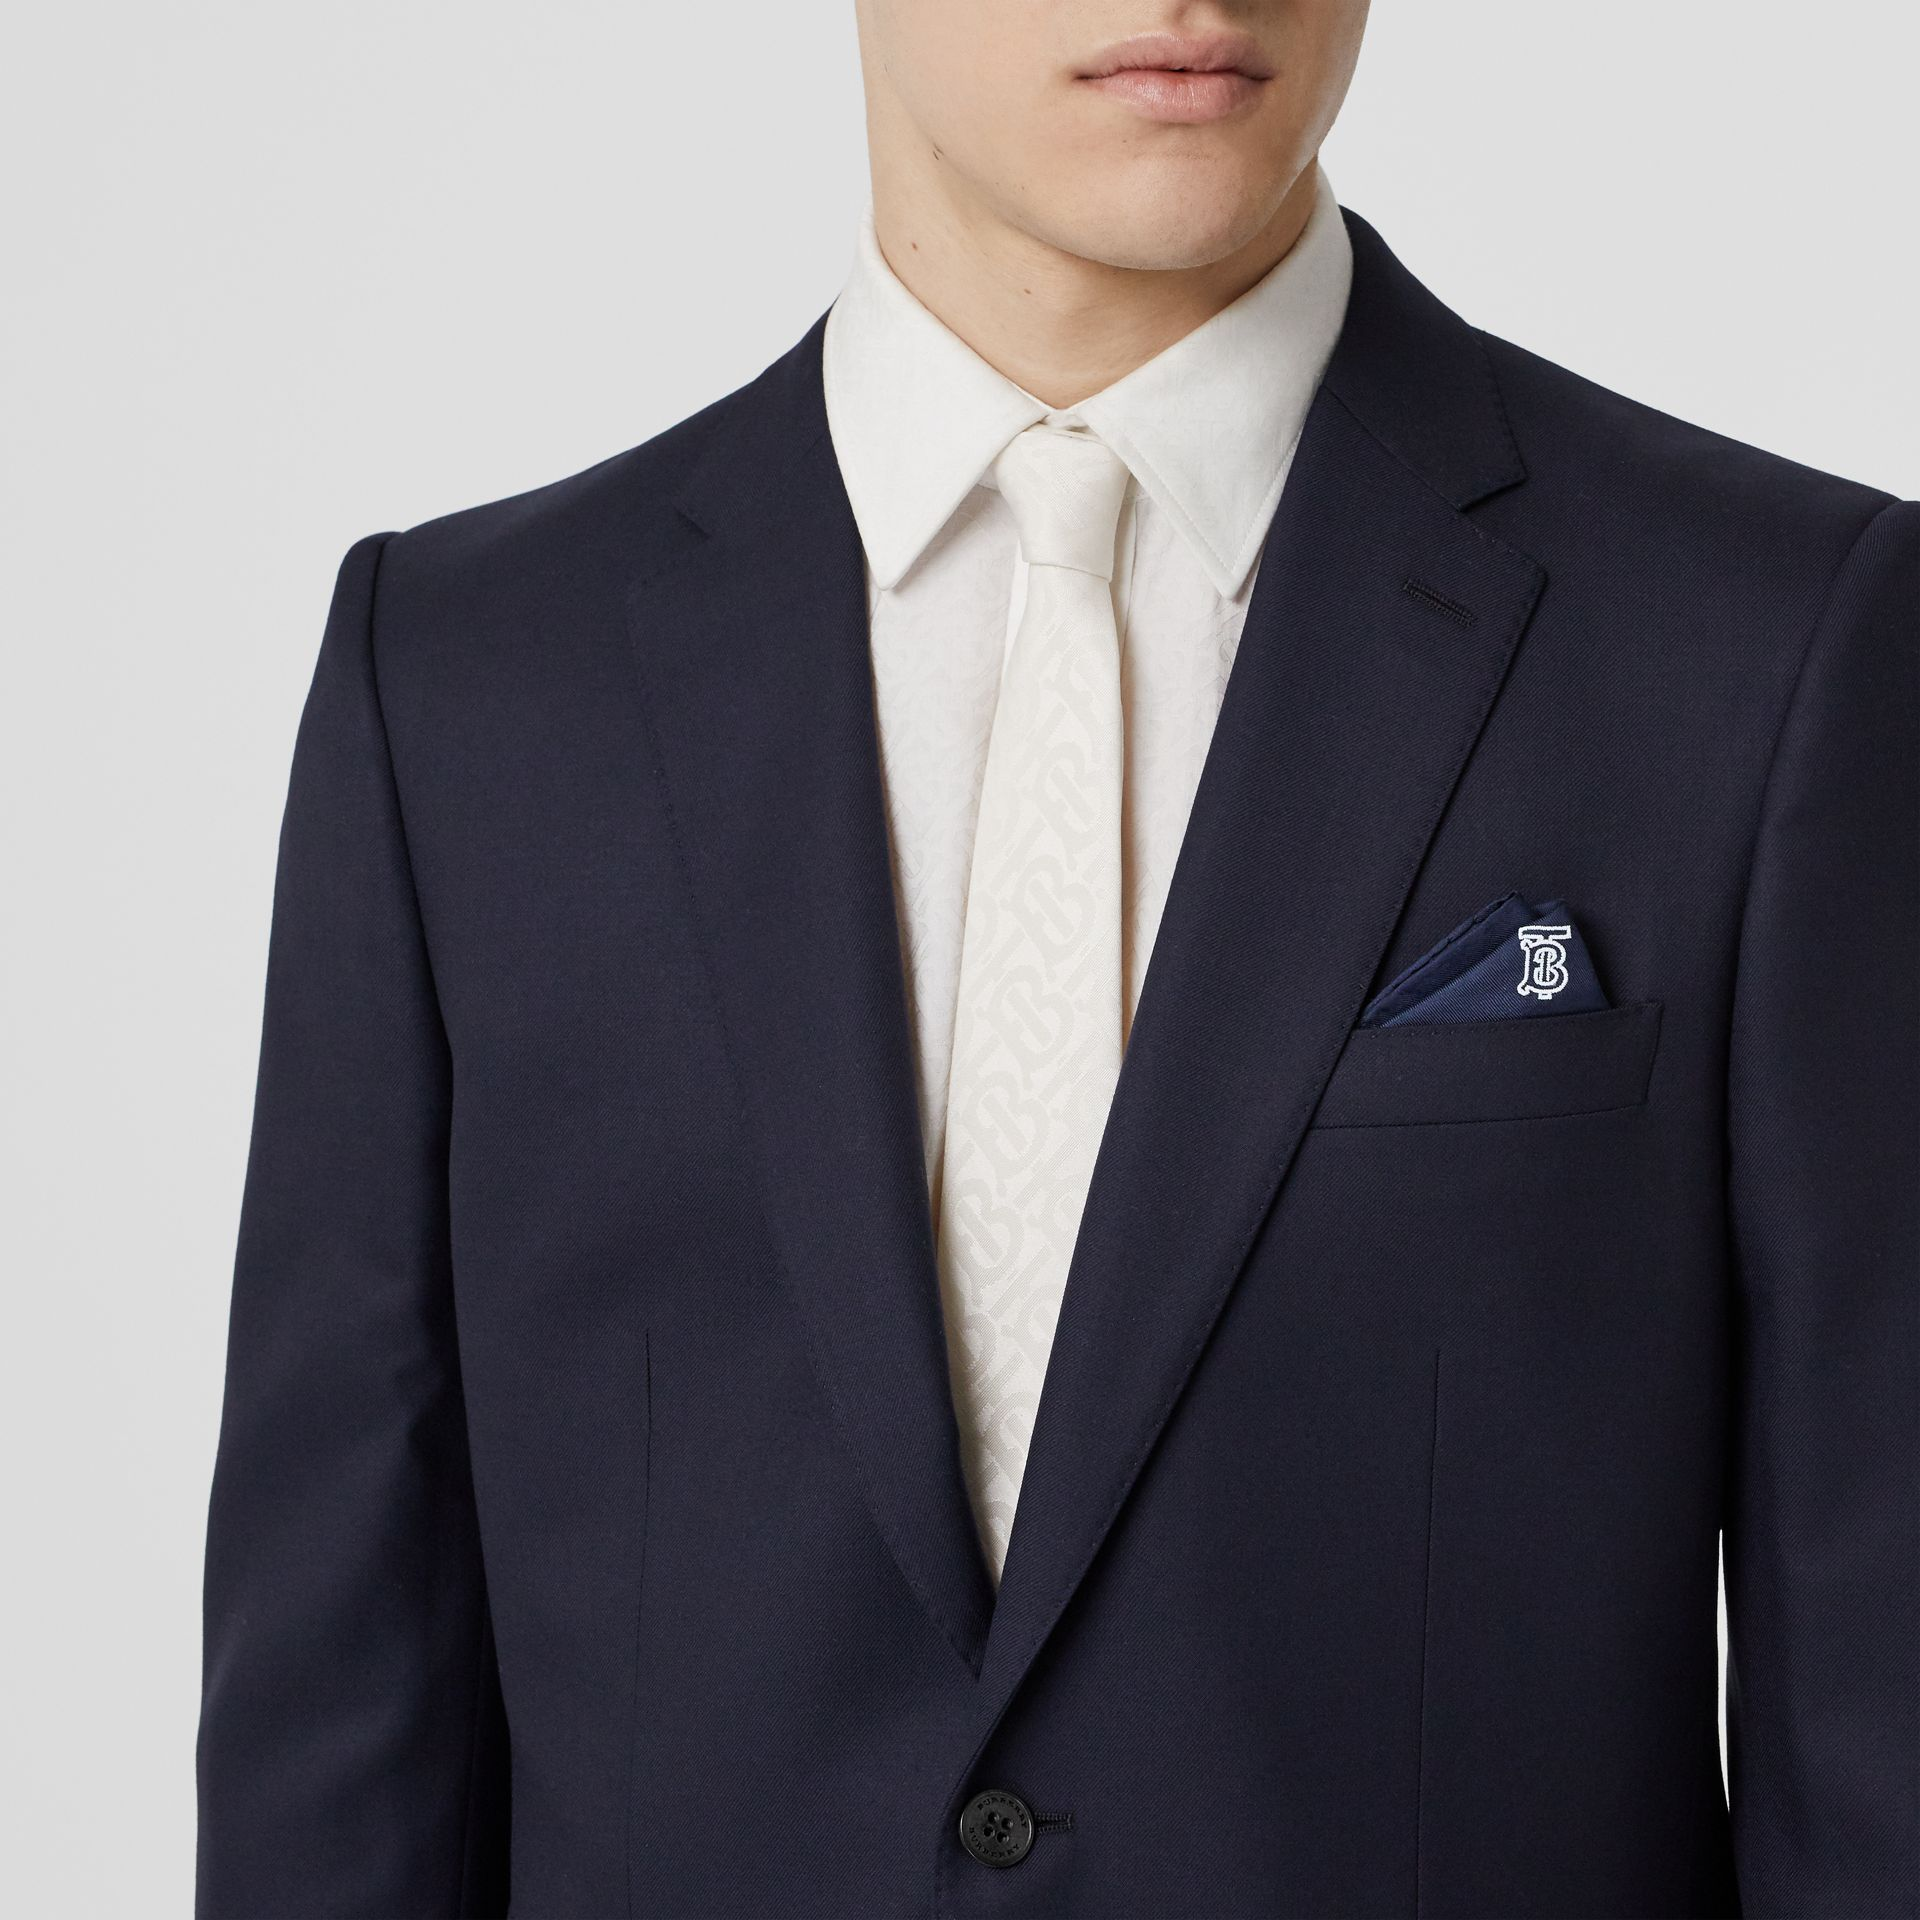 Monogram Motif Silk Pocket Square in Navy Blue - Men | Burberry Singapore - gallery image 2